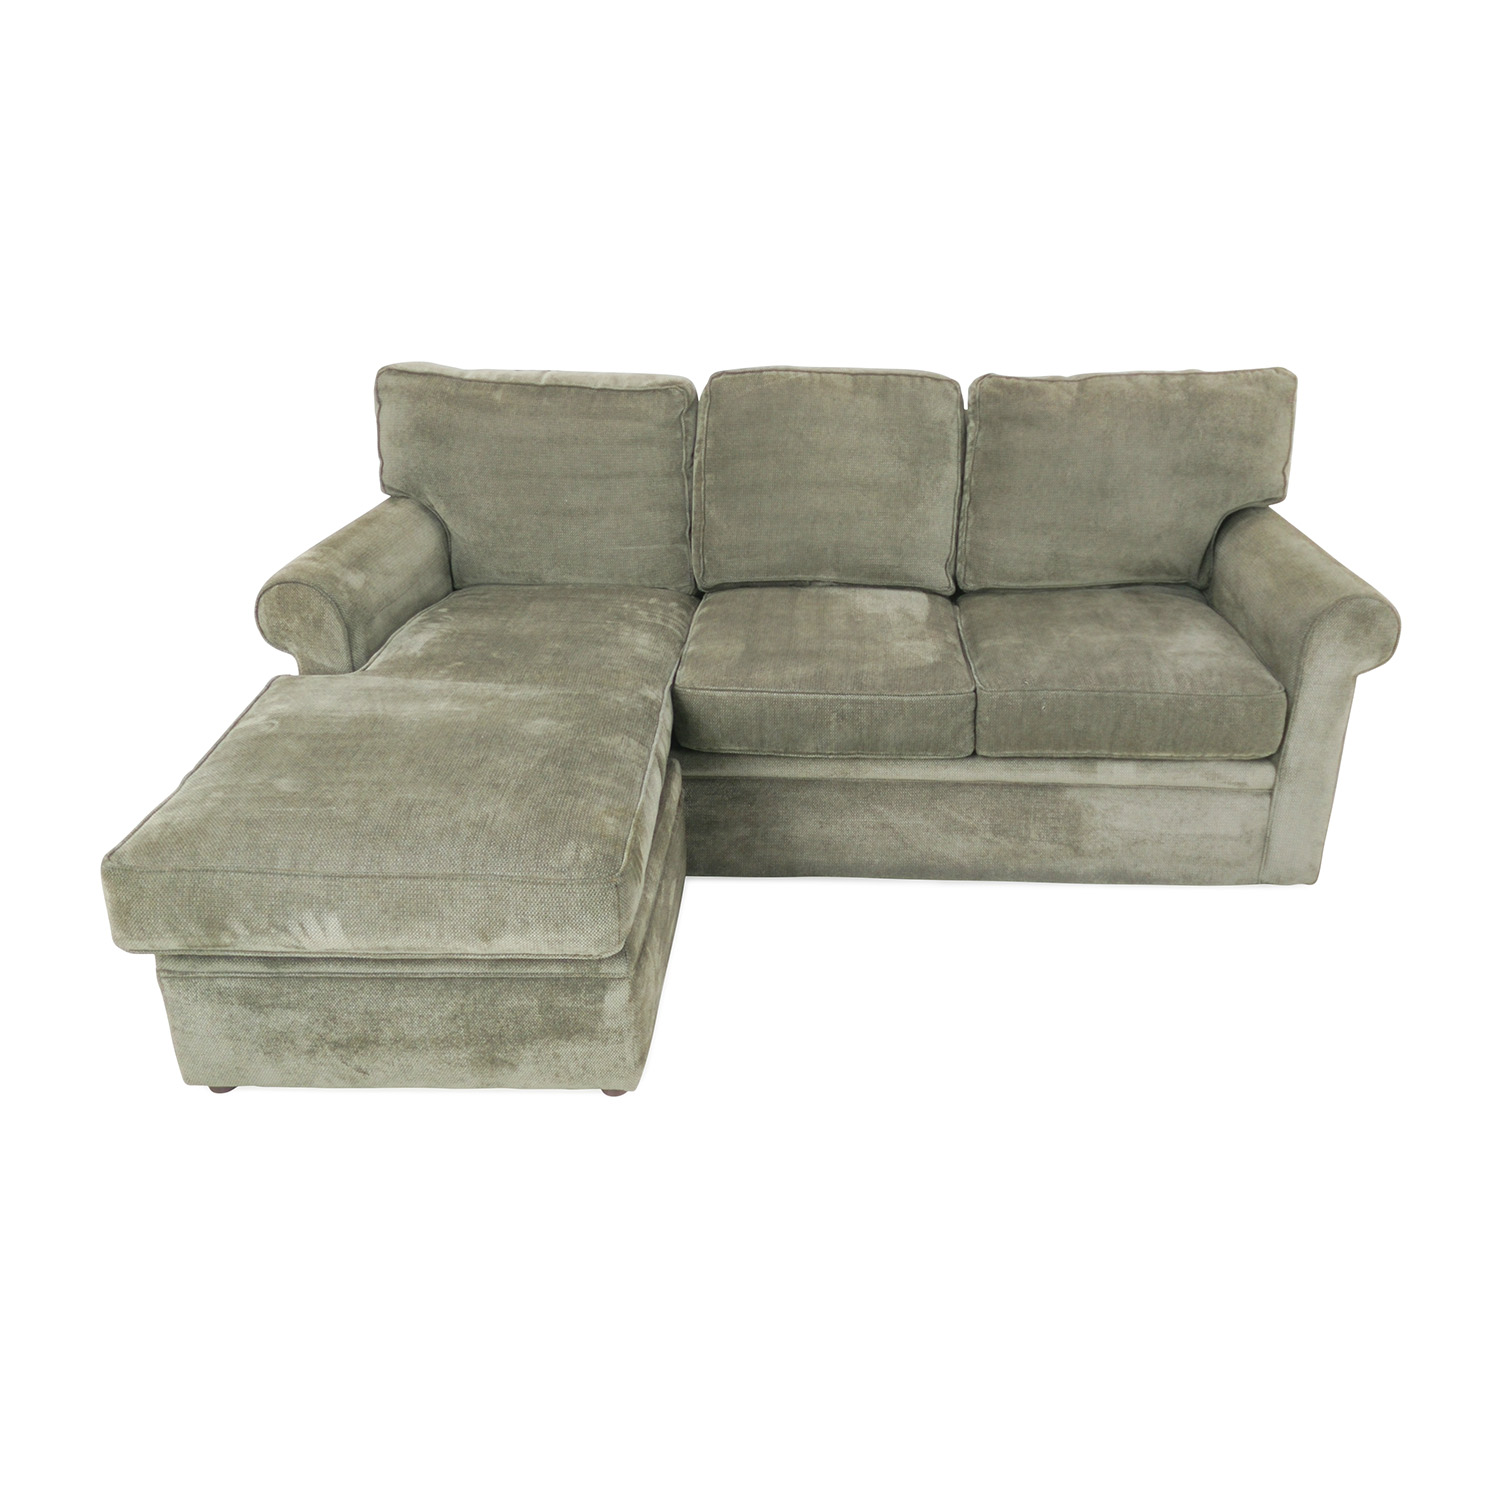 dalton sofa bed french provincial sofas and chairs 72 off rowe furniture